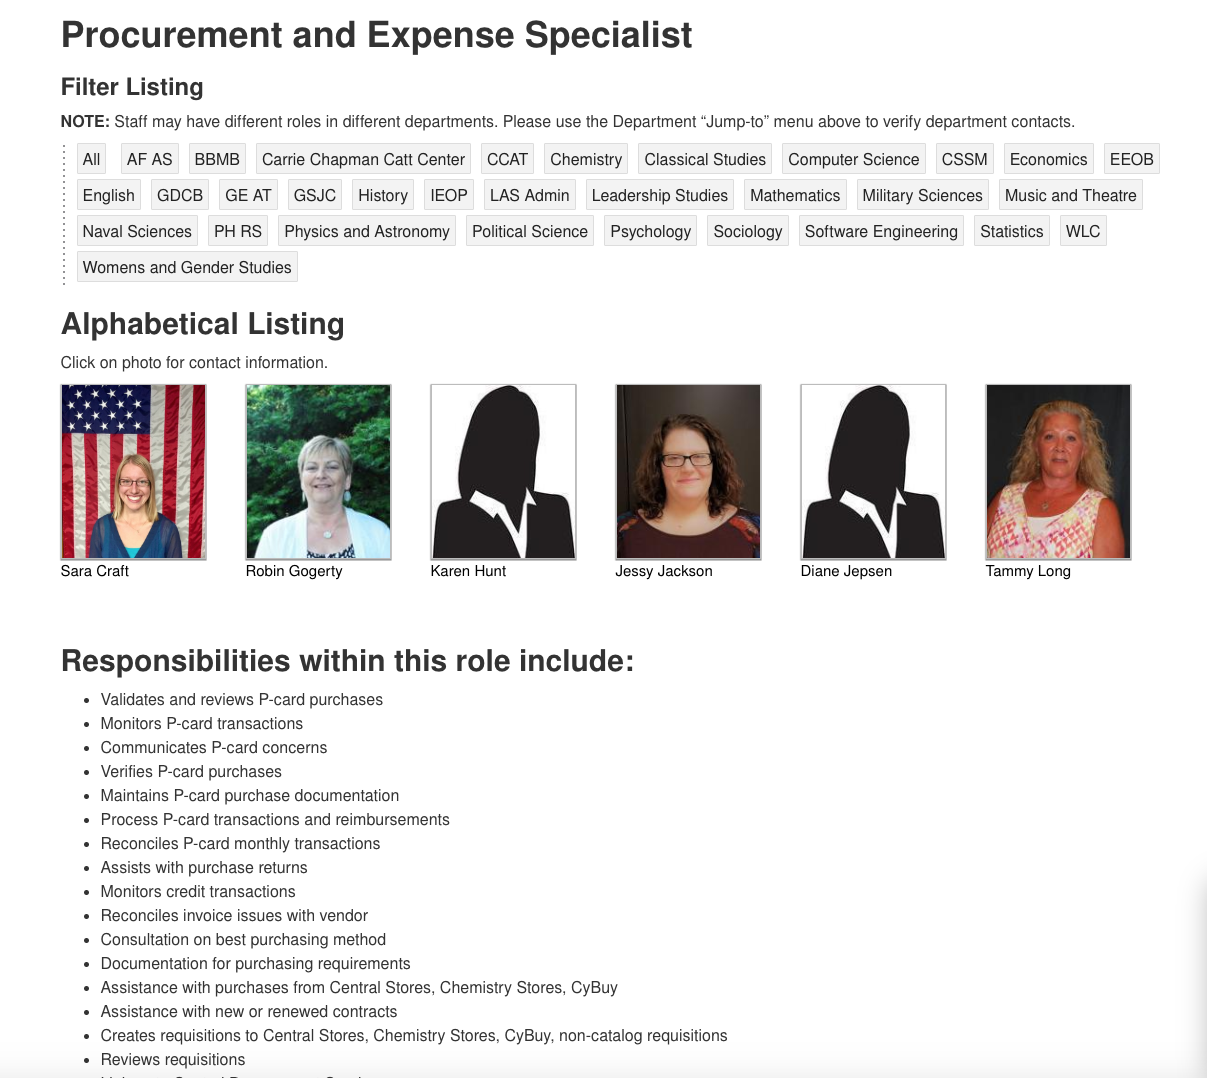 Screen shot of the procurement and expense specialist page which lists the responsibilities of a procurement expense specialist. https://my.las.iastate.edu/people-finder/procurement-and-expense-specialist/